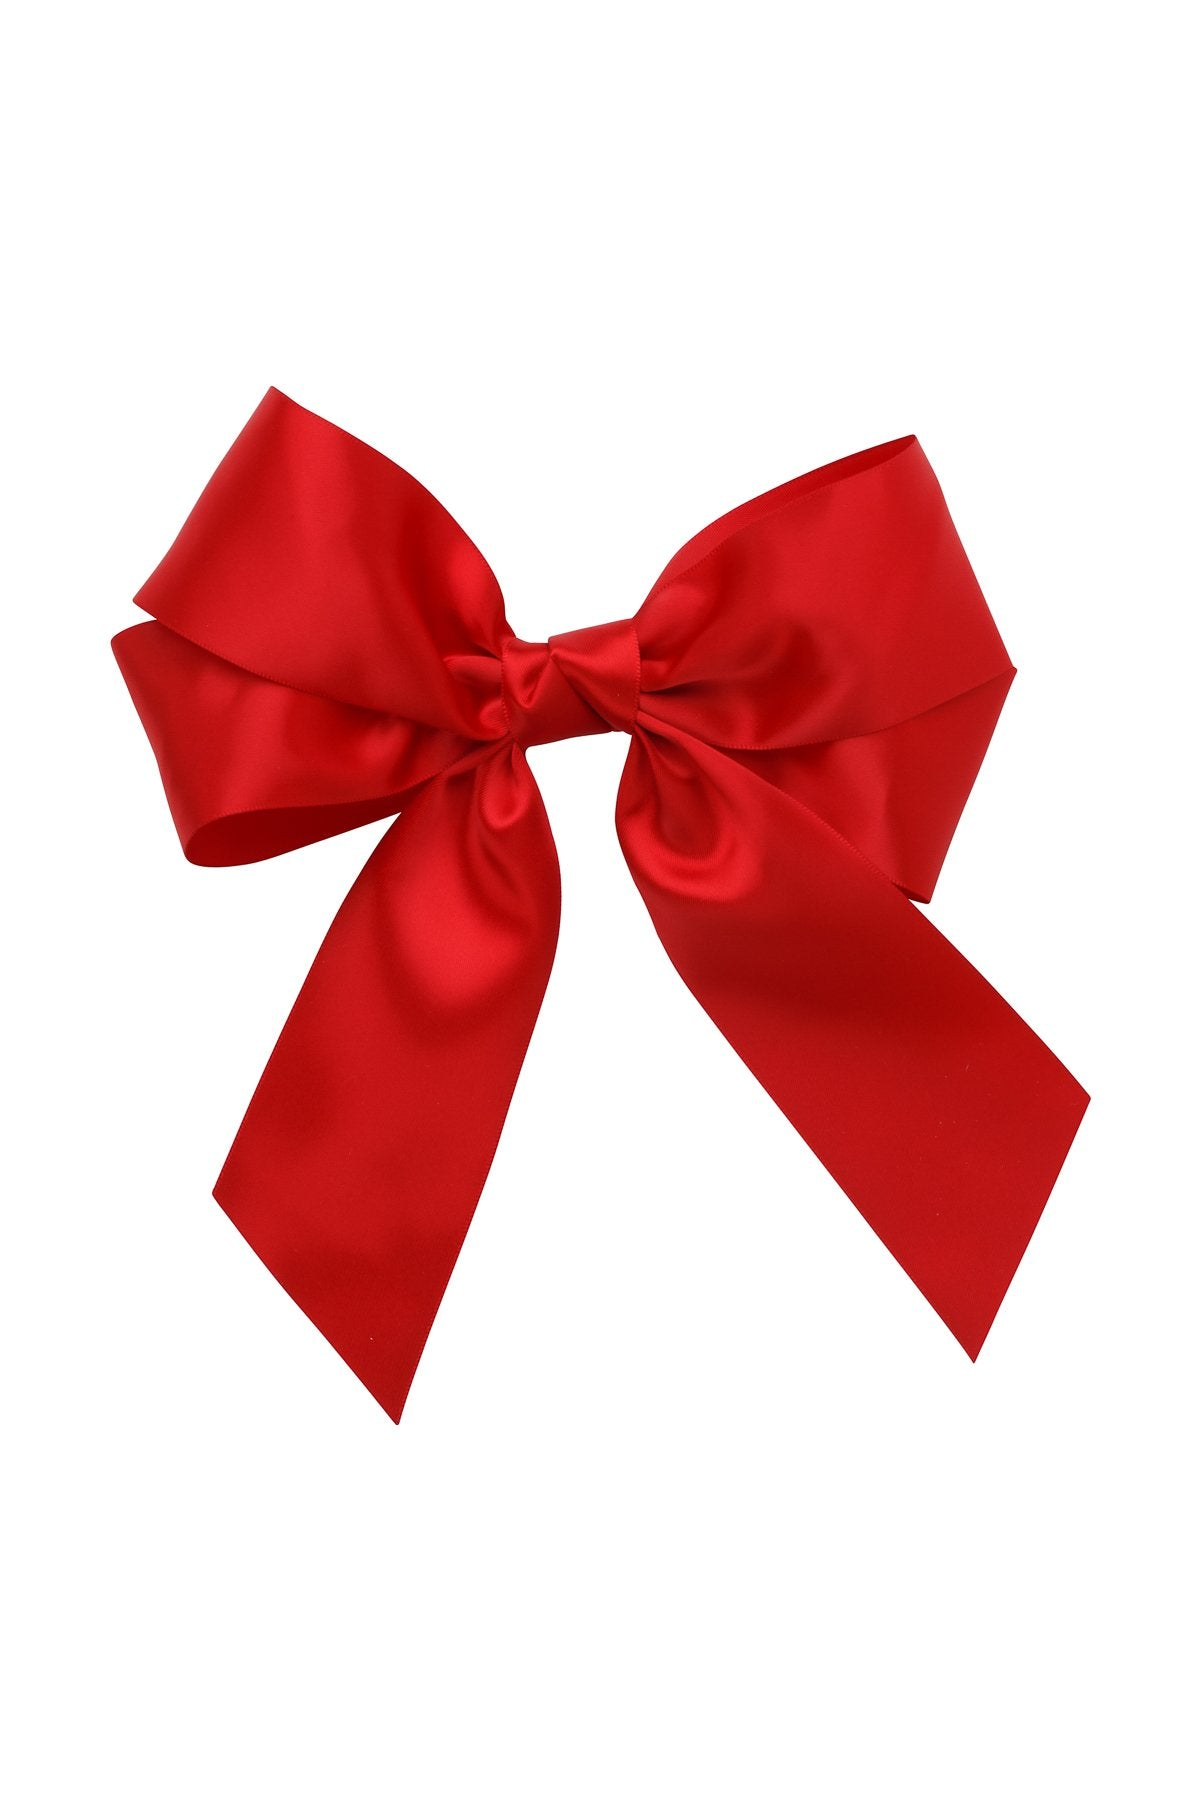 Oversized Bow Pony/Clip - Red - PROJECT 6, modest fashion